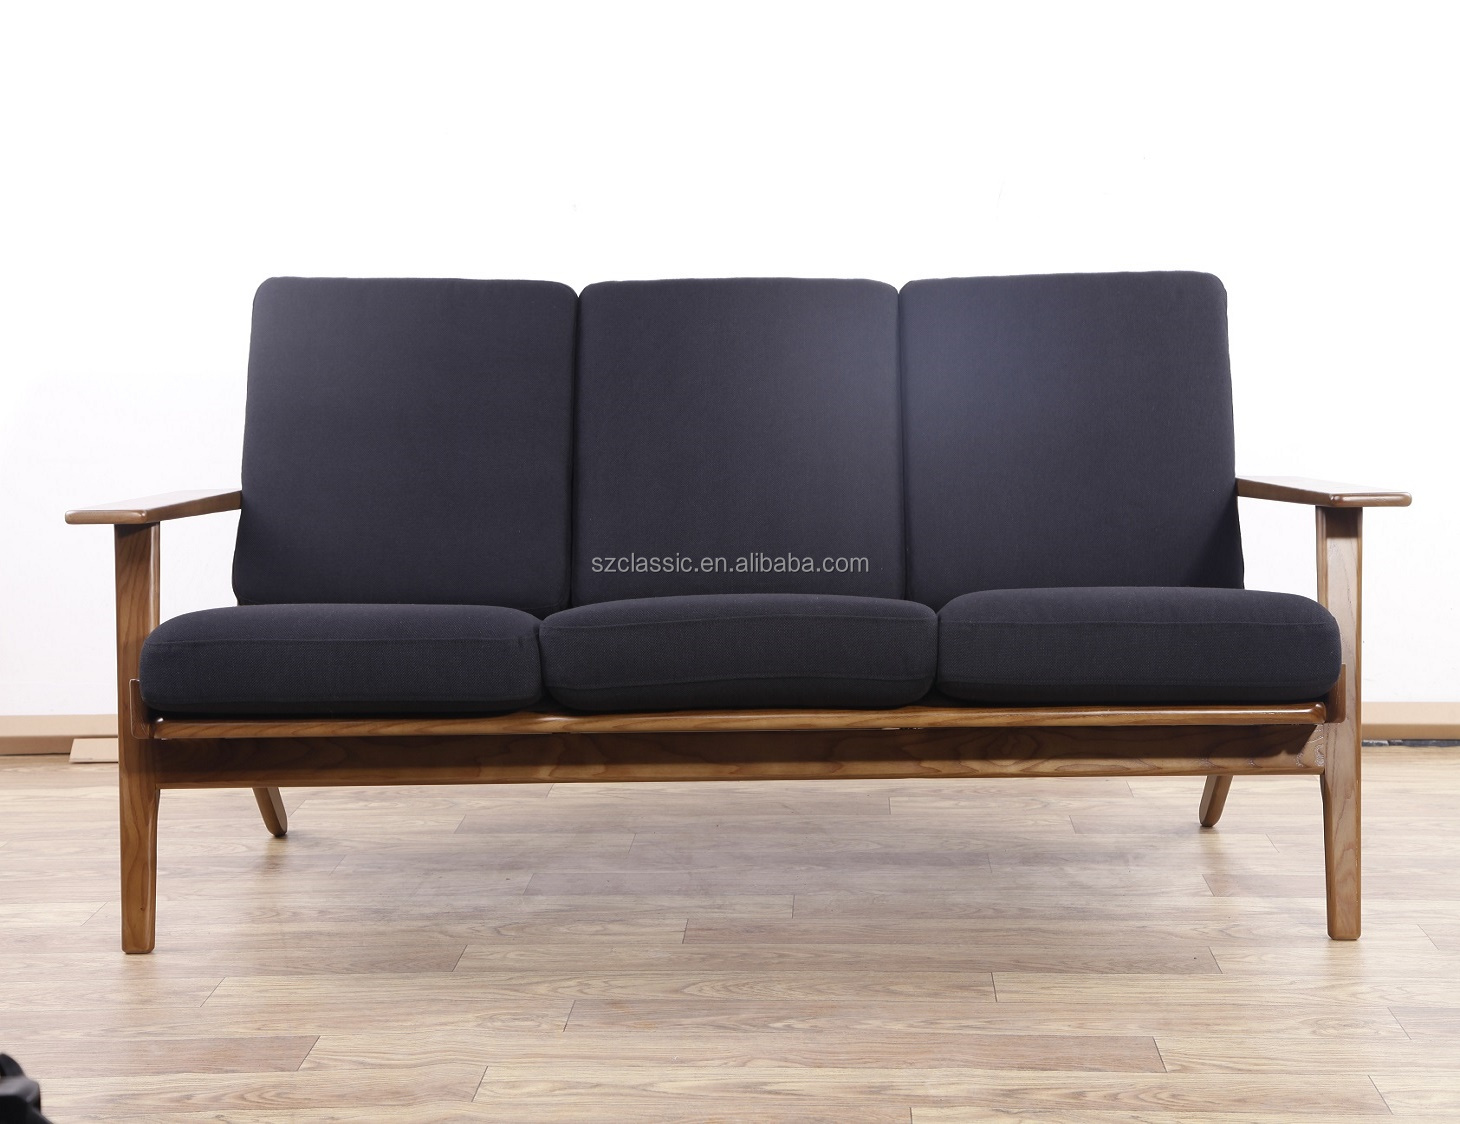 Hans Wegner Sofa Replica Mid Century Modern Design Furniture Ge 290 Hans Wegner Plank Chair Reproduction Buy Wegner Plank Chair Plank Chair Reproduction Hans Wegner Plank